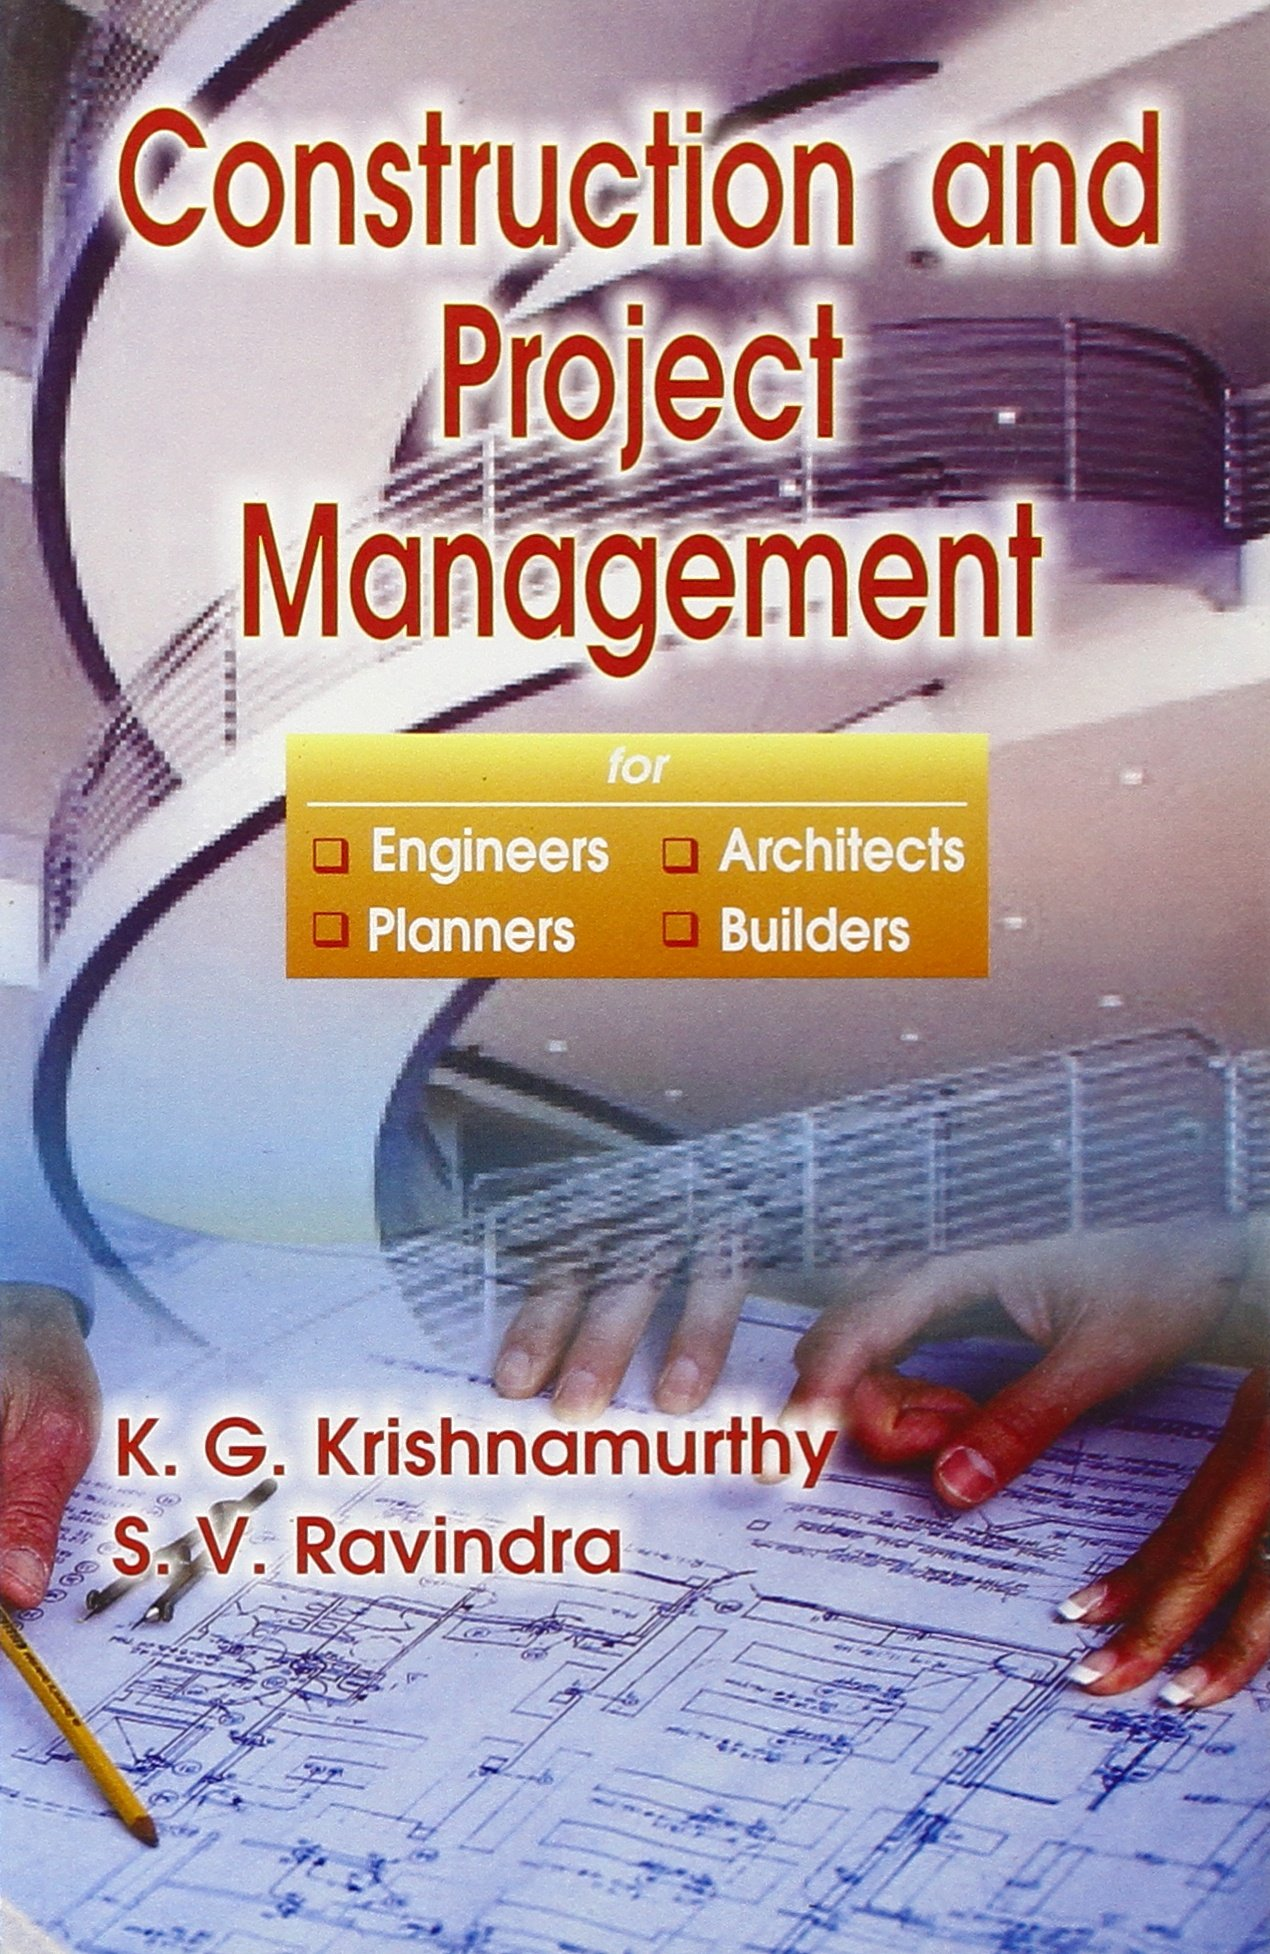 construction and project management: krishnamurthy